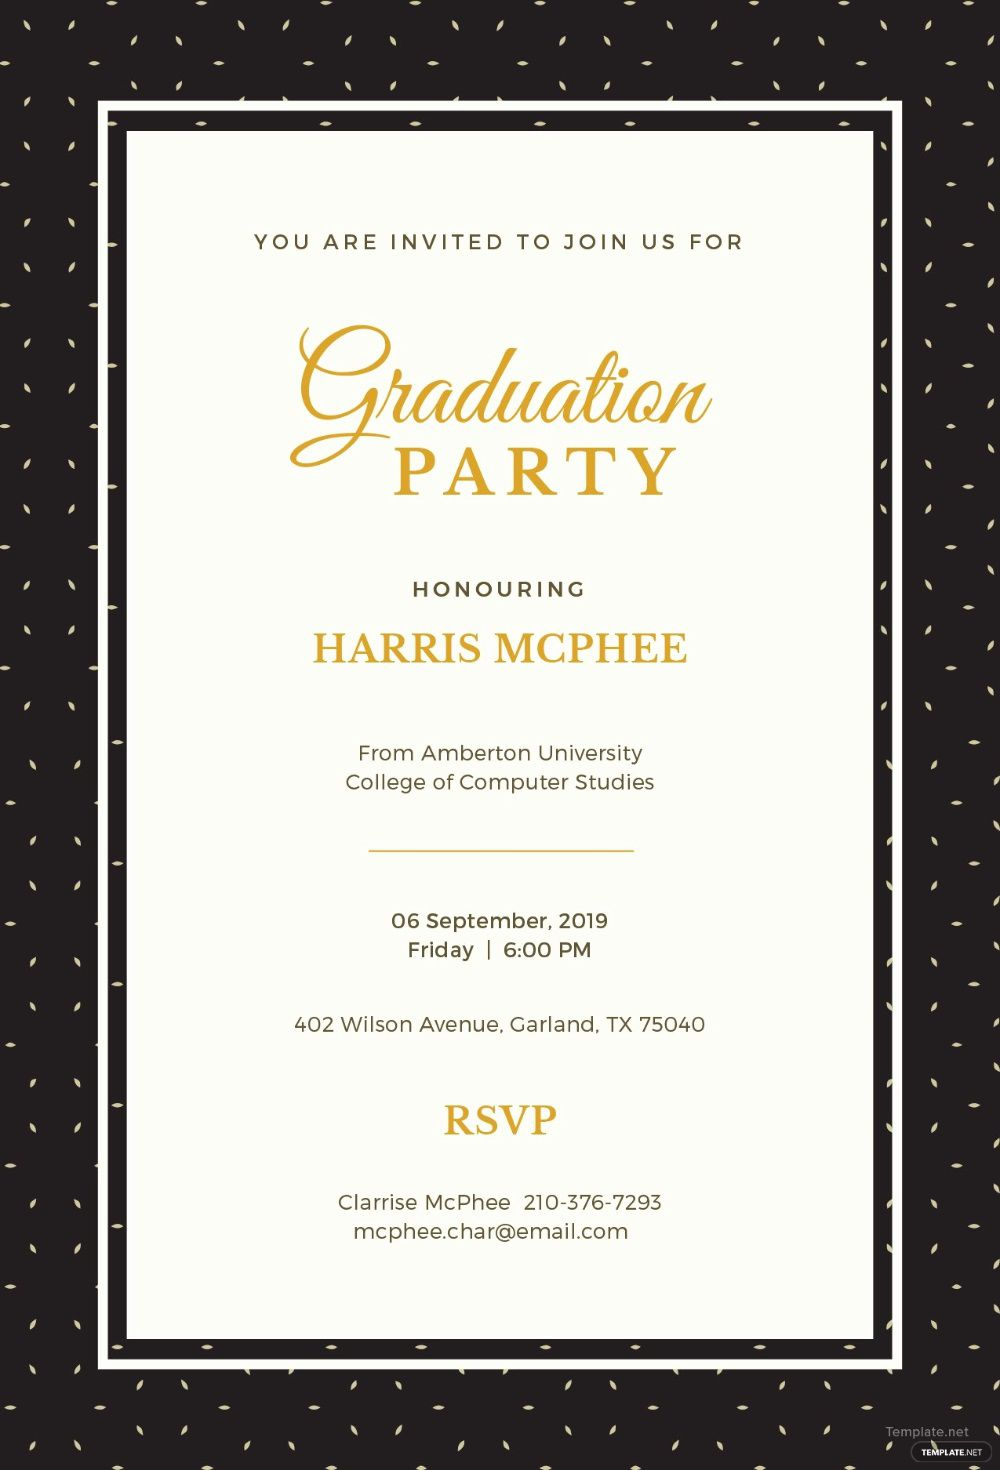 003 Exceptional Free Graduation Announcement Template High Resolution  Templates For Word MicrosoftFull